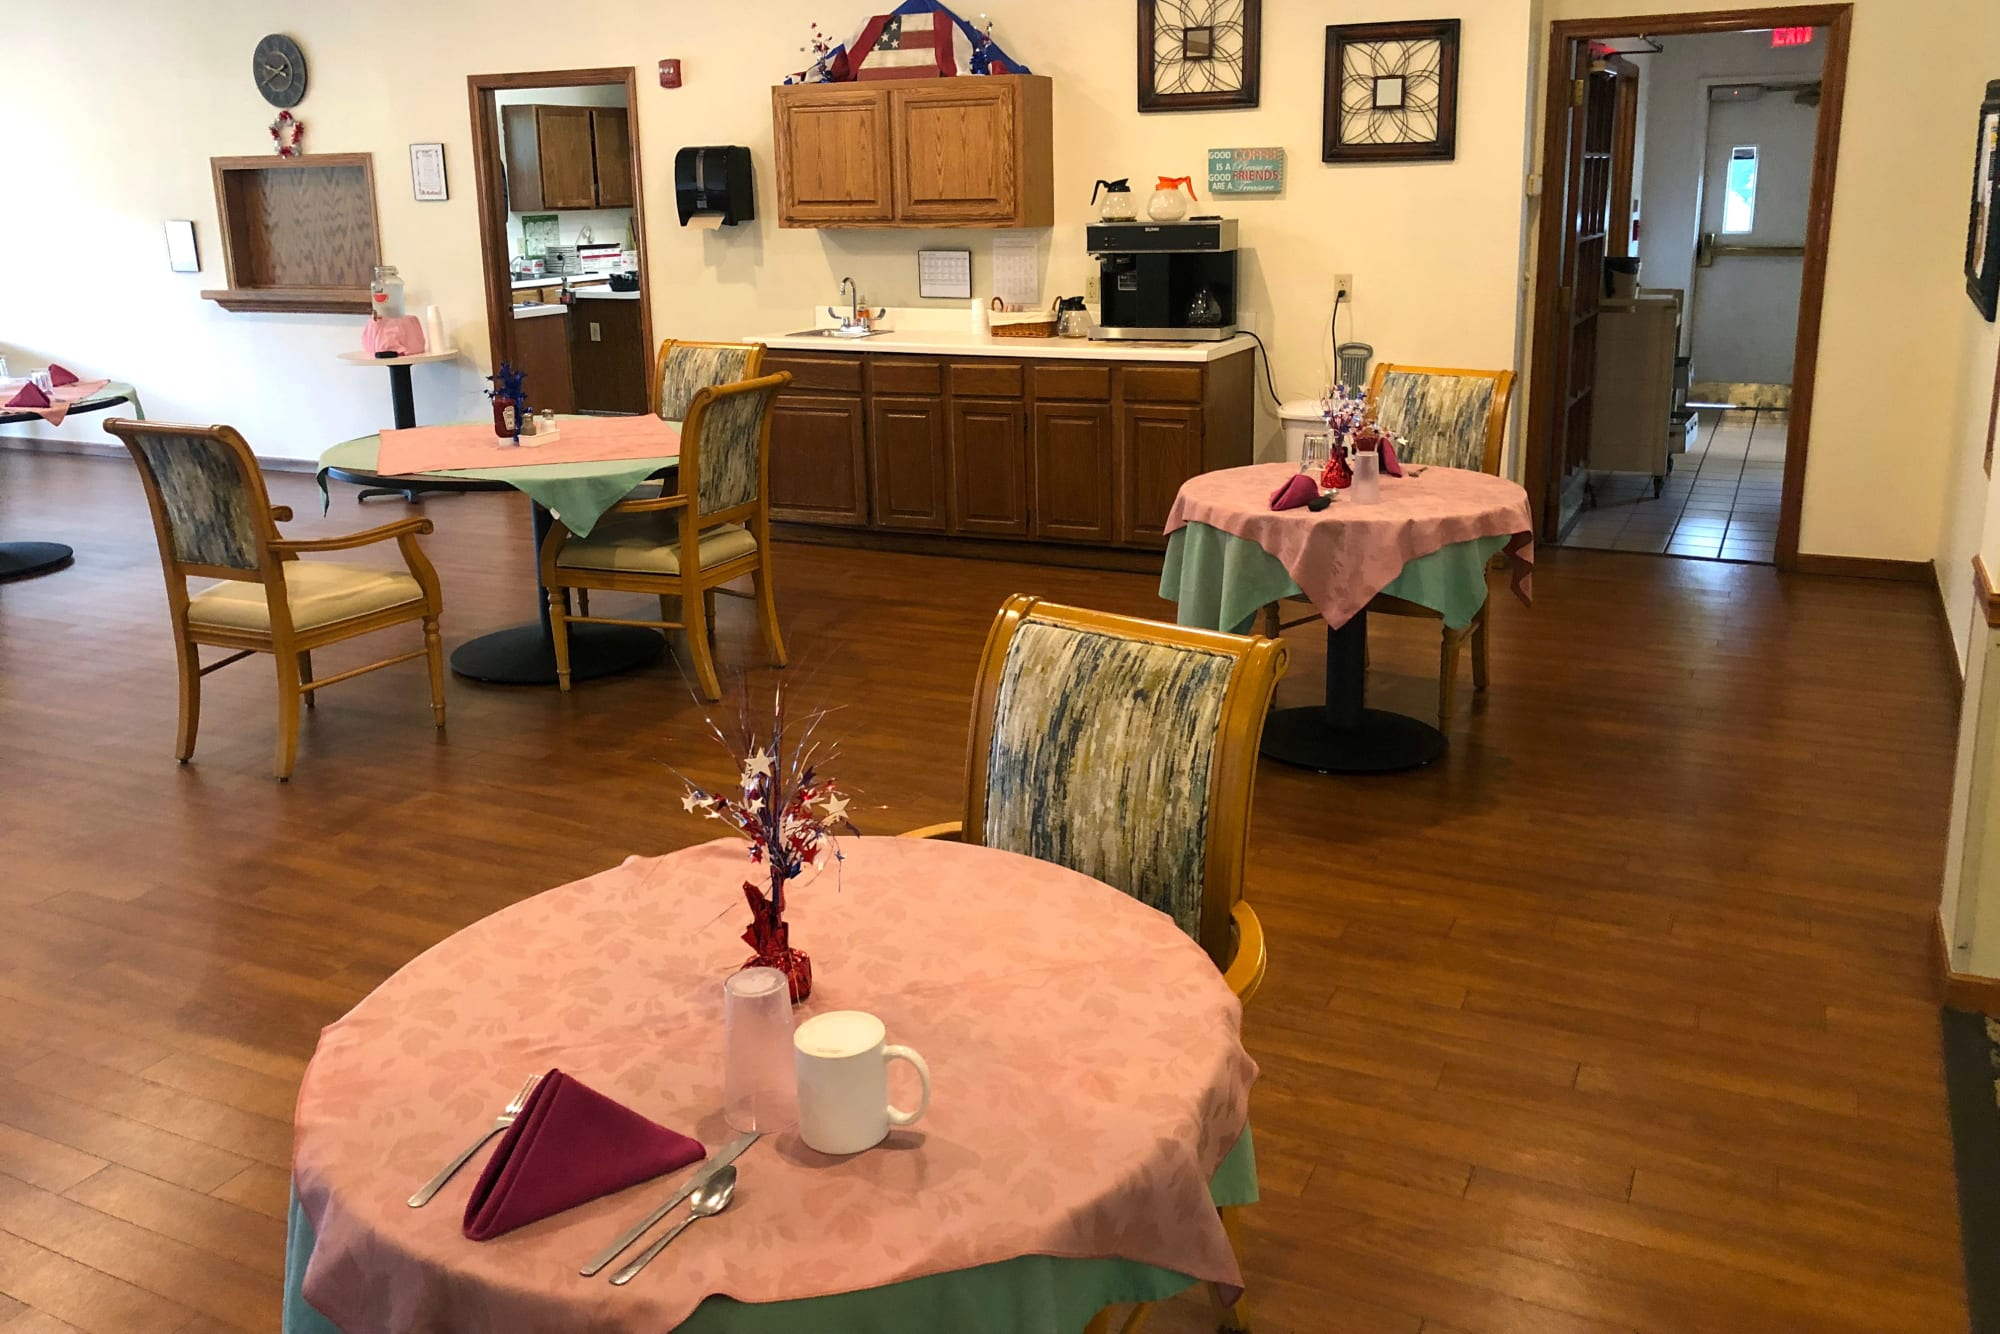 Interior lounge in main building at Ashbrook Village in Duncan, Oklahoma.